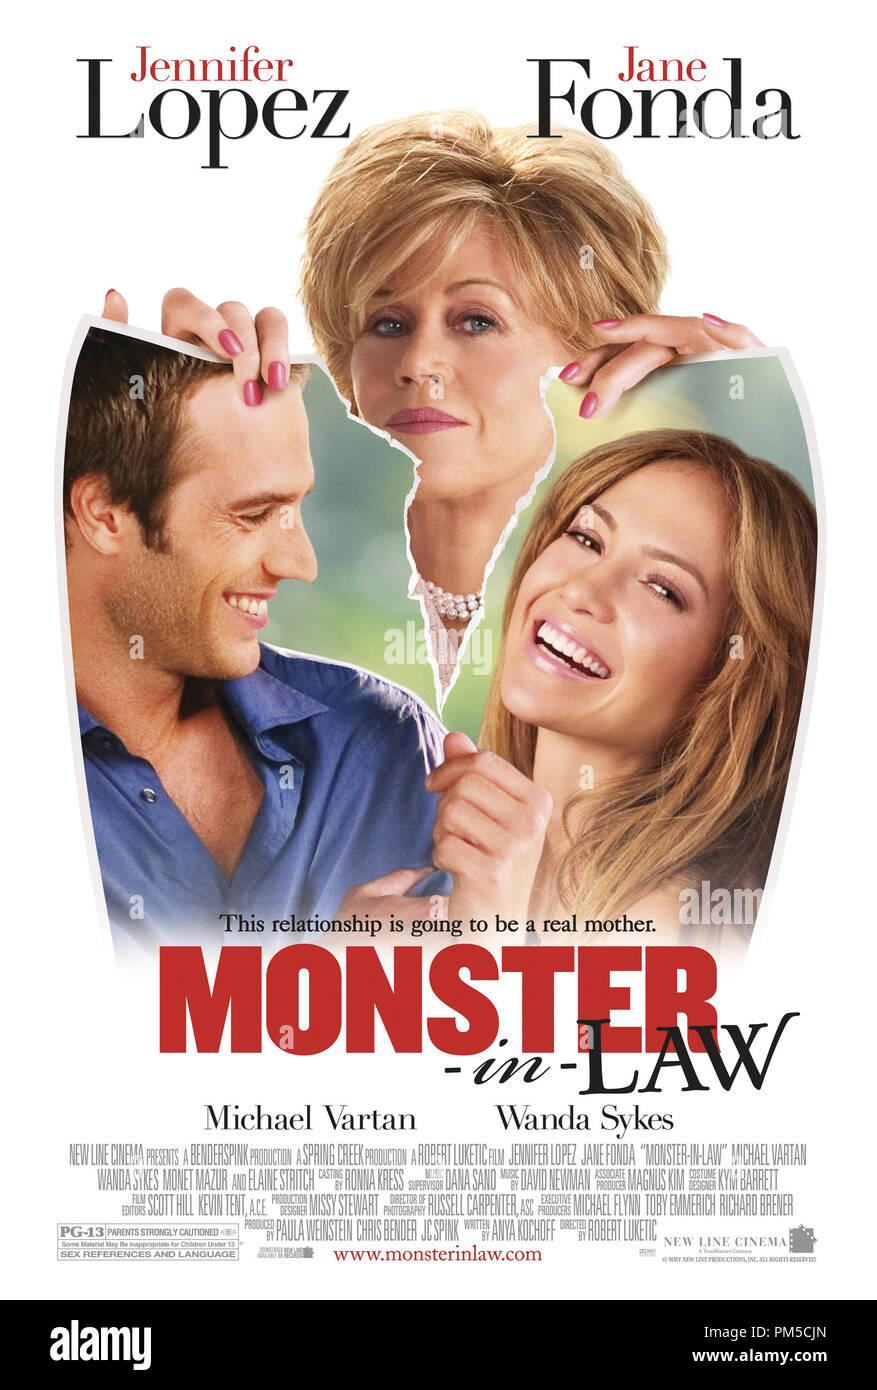 Poster Art from 'Monster-in-Law' Poster © 2005 New Line Productions   File Reference # 307361103THA  For Editorial Use Only -  All Rights Reserved - Stock Image